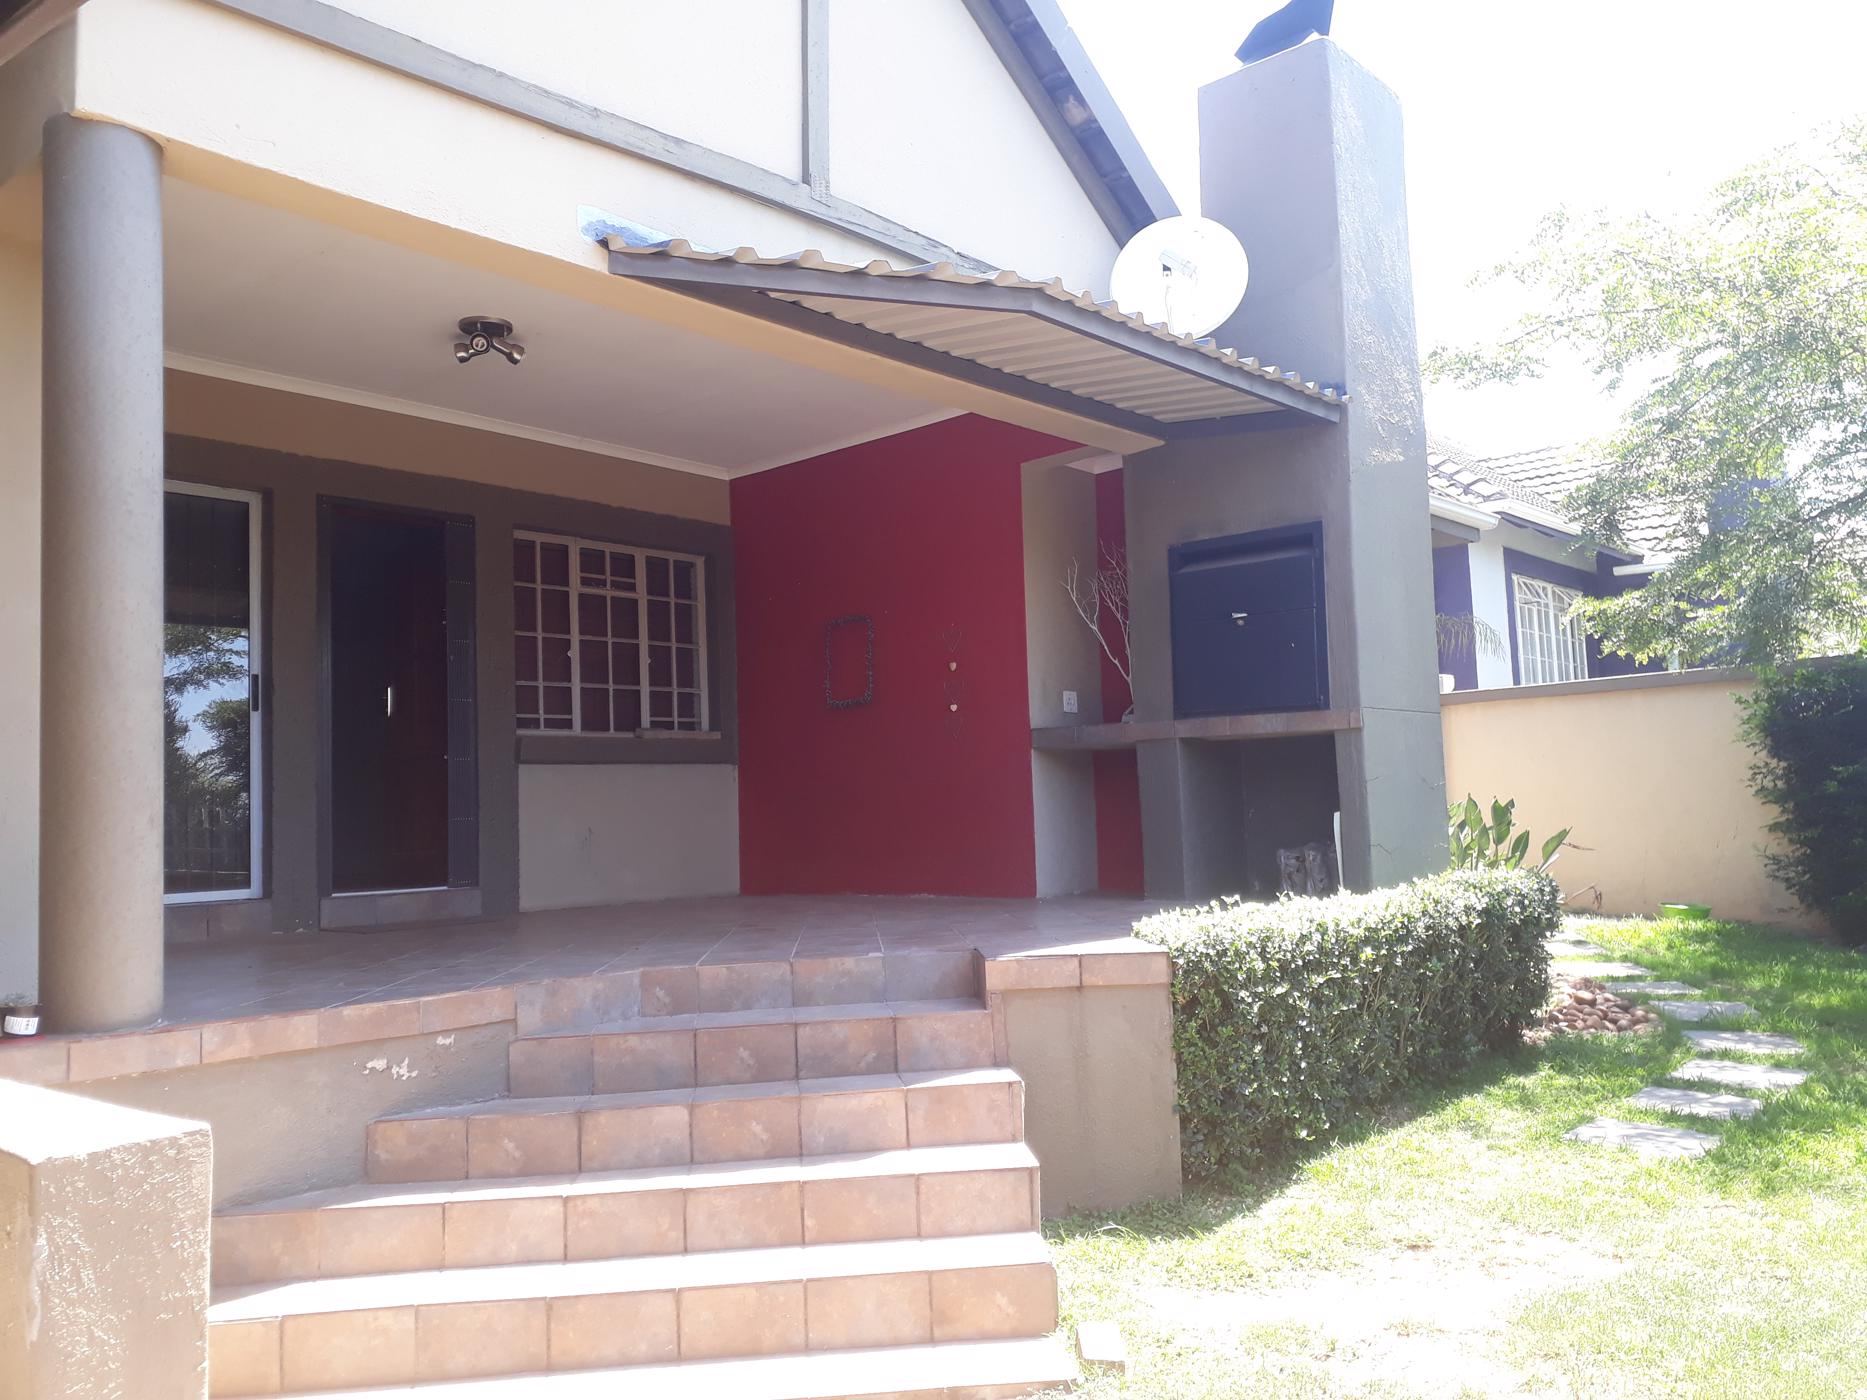 https://listing.pamgolding.co.za/images/properties/201812/1239397/H/1239397_H_2.jpg